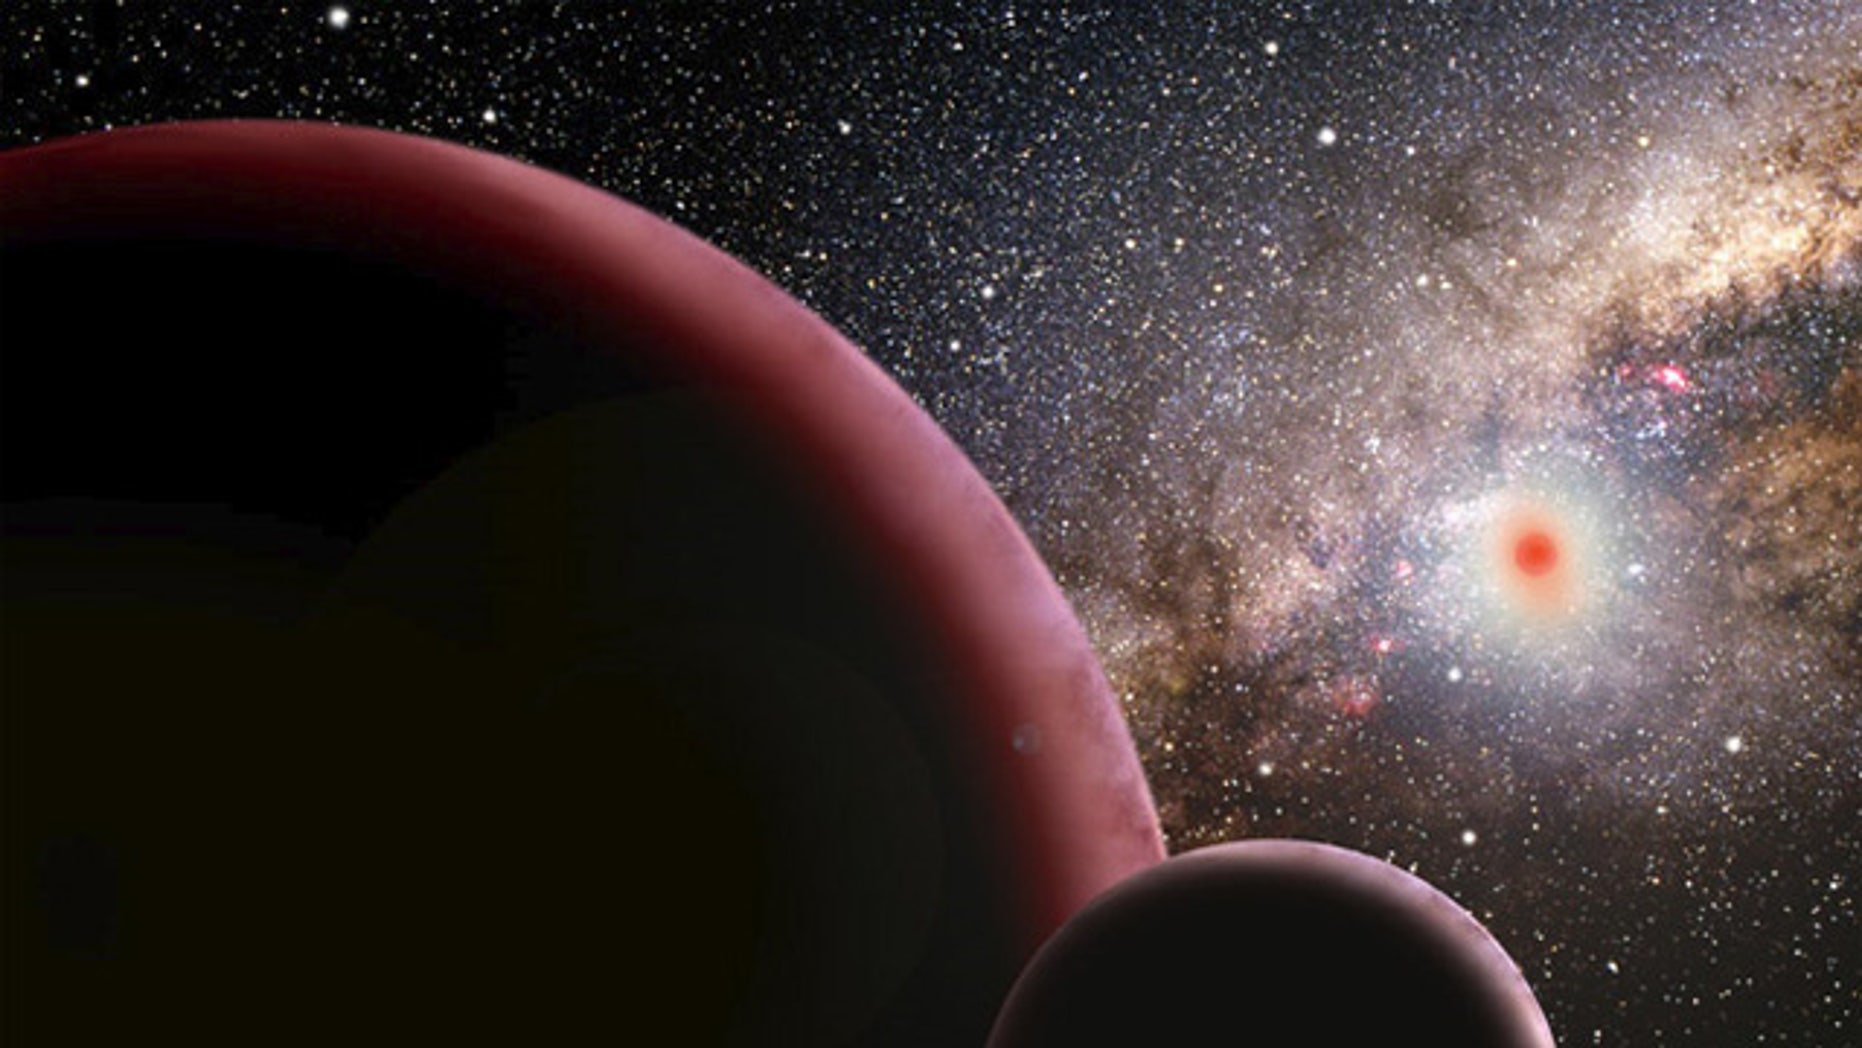 New methods have allowed the Kepler space telescope to discover billions more planets in the galaxy.